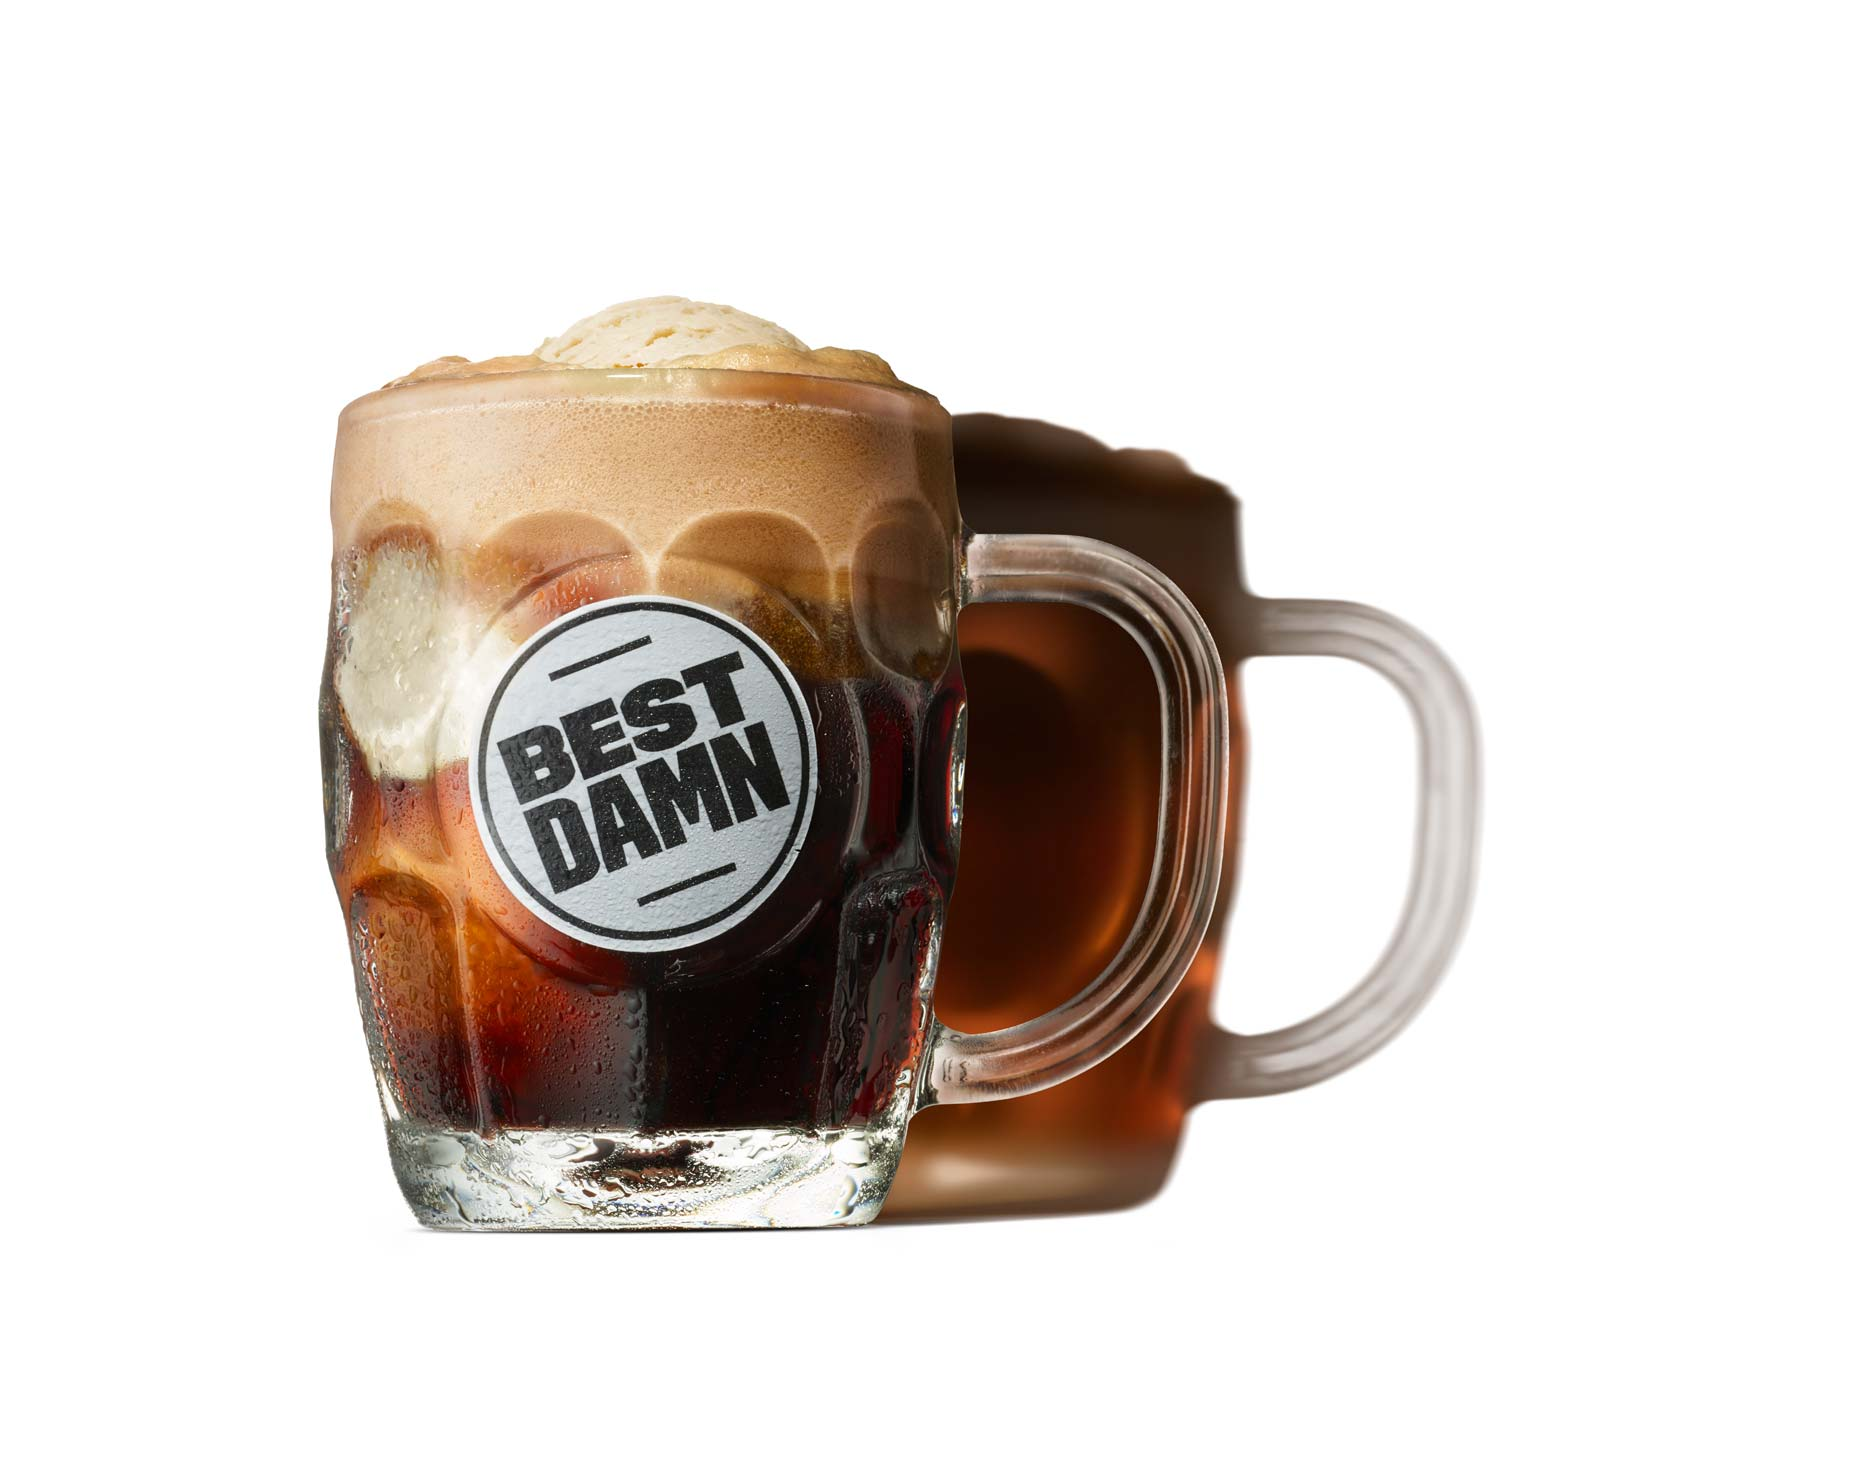 009_0563_group360_bestdamnrootbeer_float_portfolio